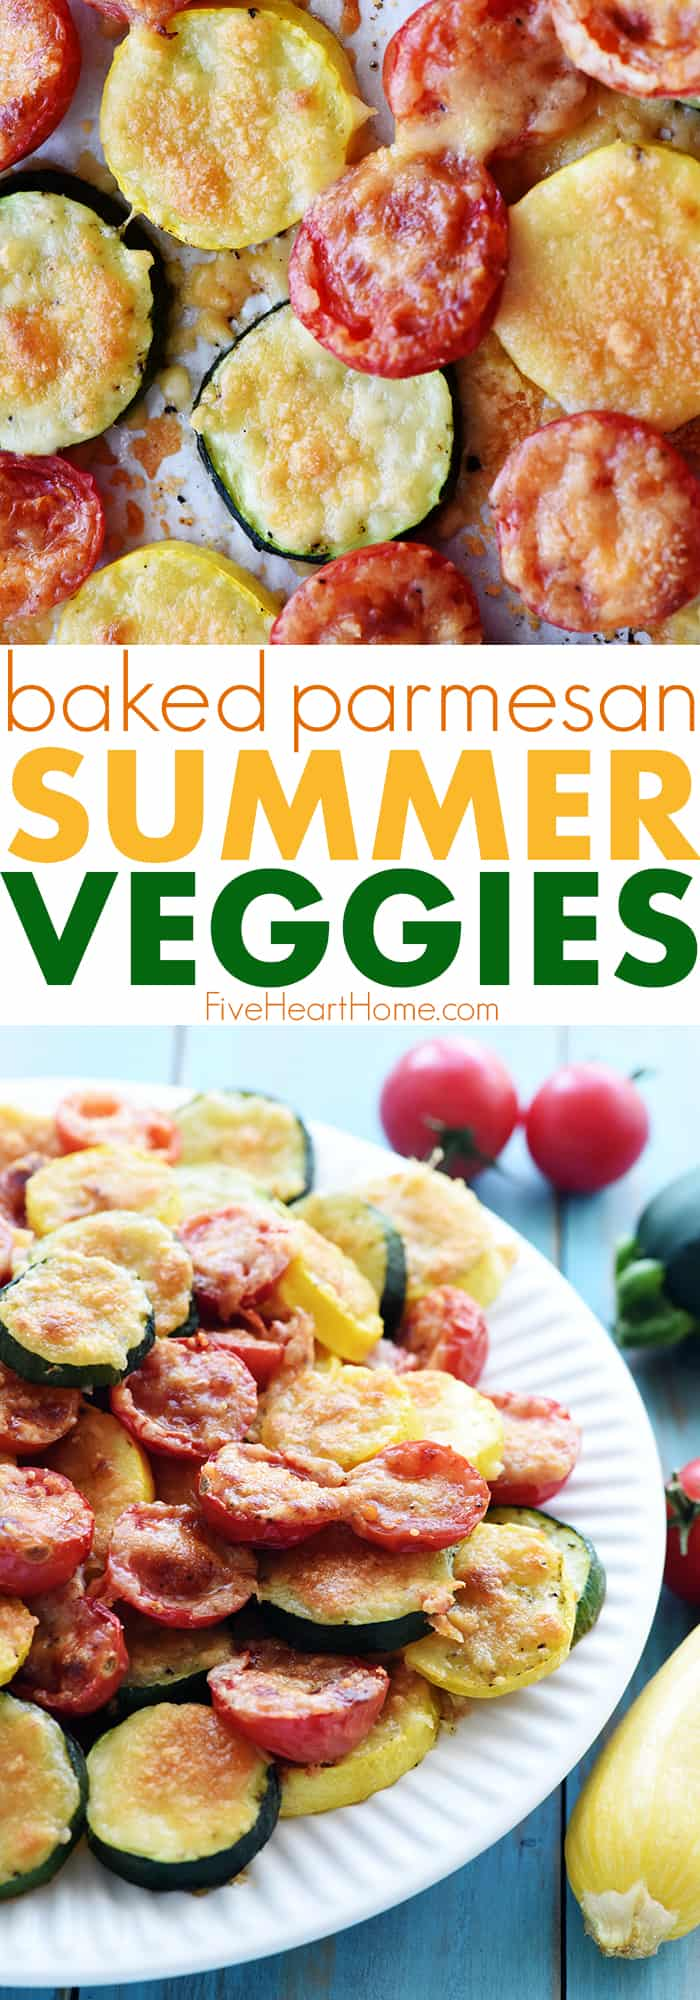 Baked Parmesan Summer Veggies ~ featuring roasted zucchini, squash, & tomatoes topped with melty golden cheese, this tasty side dish recipe is simple to make and absolutely addictive! | FiveHeartHome.com